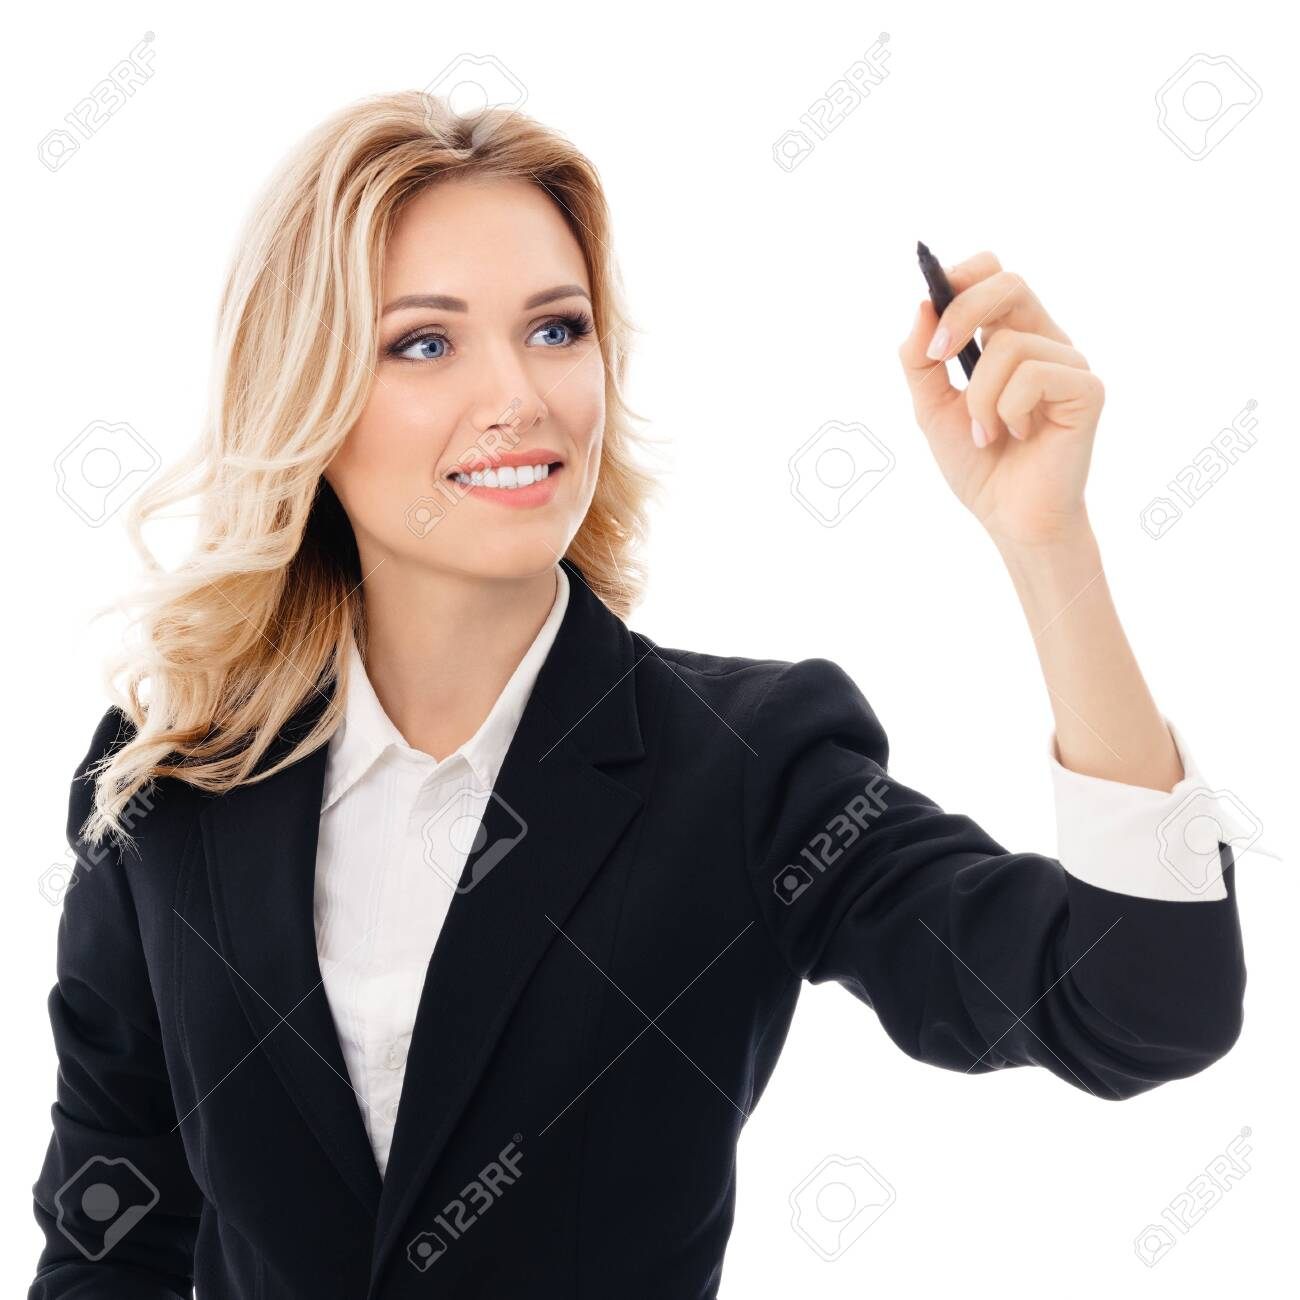 Happy smiling cheerful young businesswoman writing or drawing something on screen or transparent glass, by blue marker, isolated over white background - 120343373